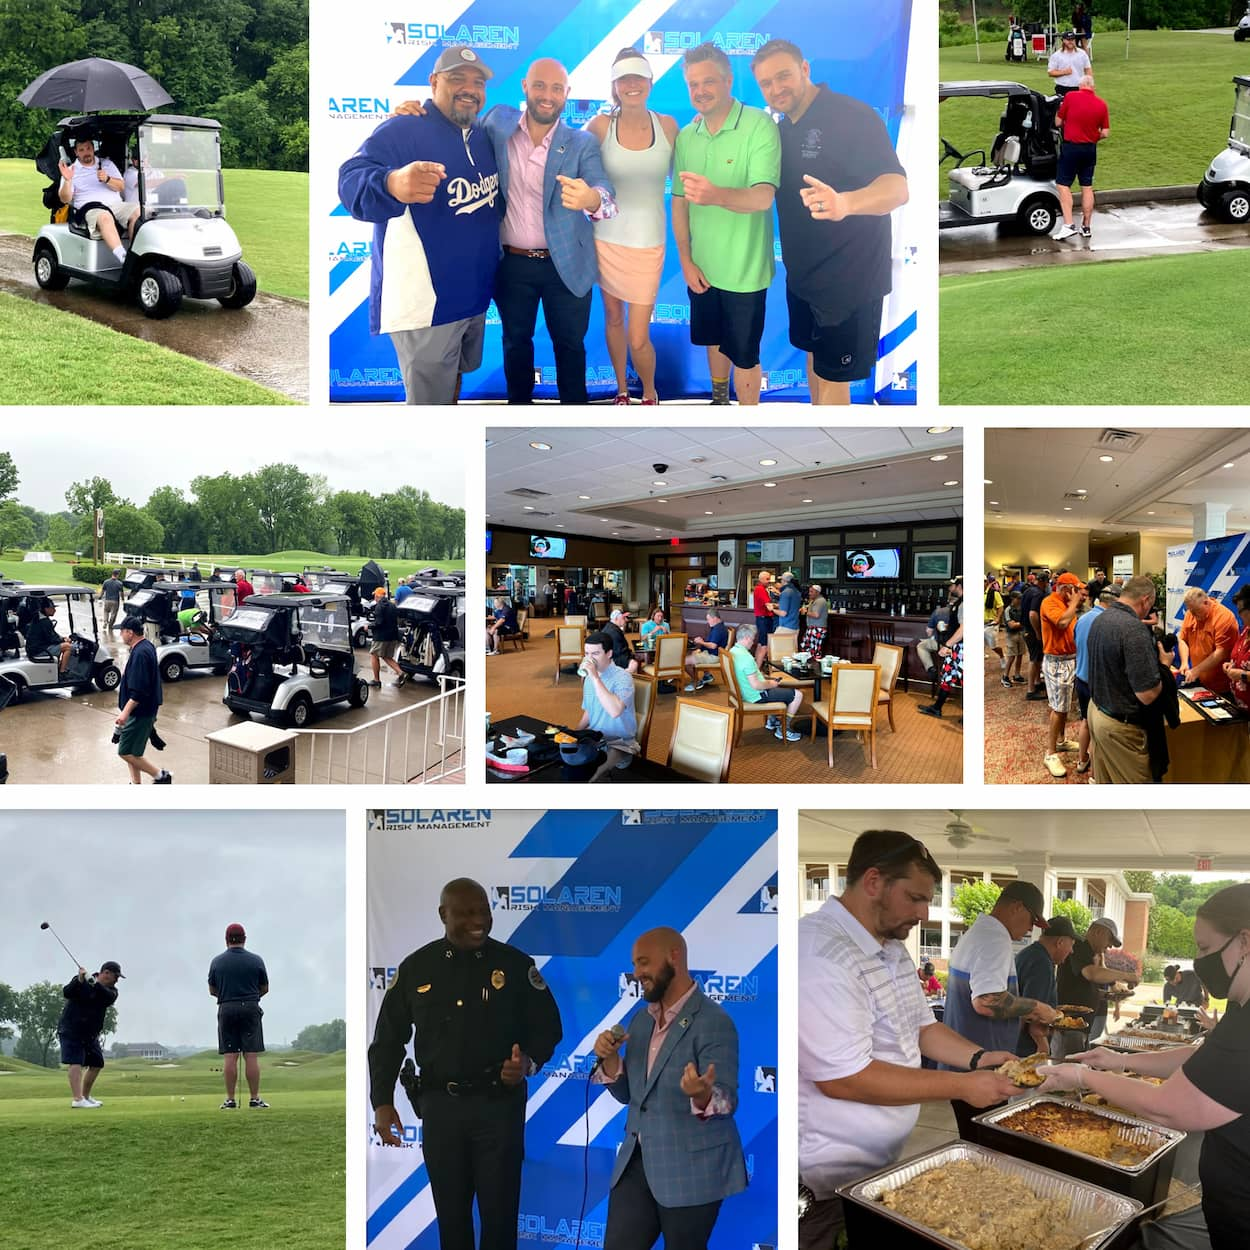 solaren-sponsors-annual-golf-event-for-andrew-jackson-fop-youth-camp-2